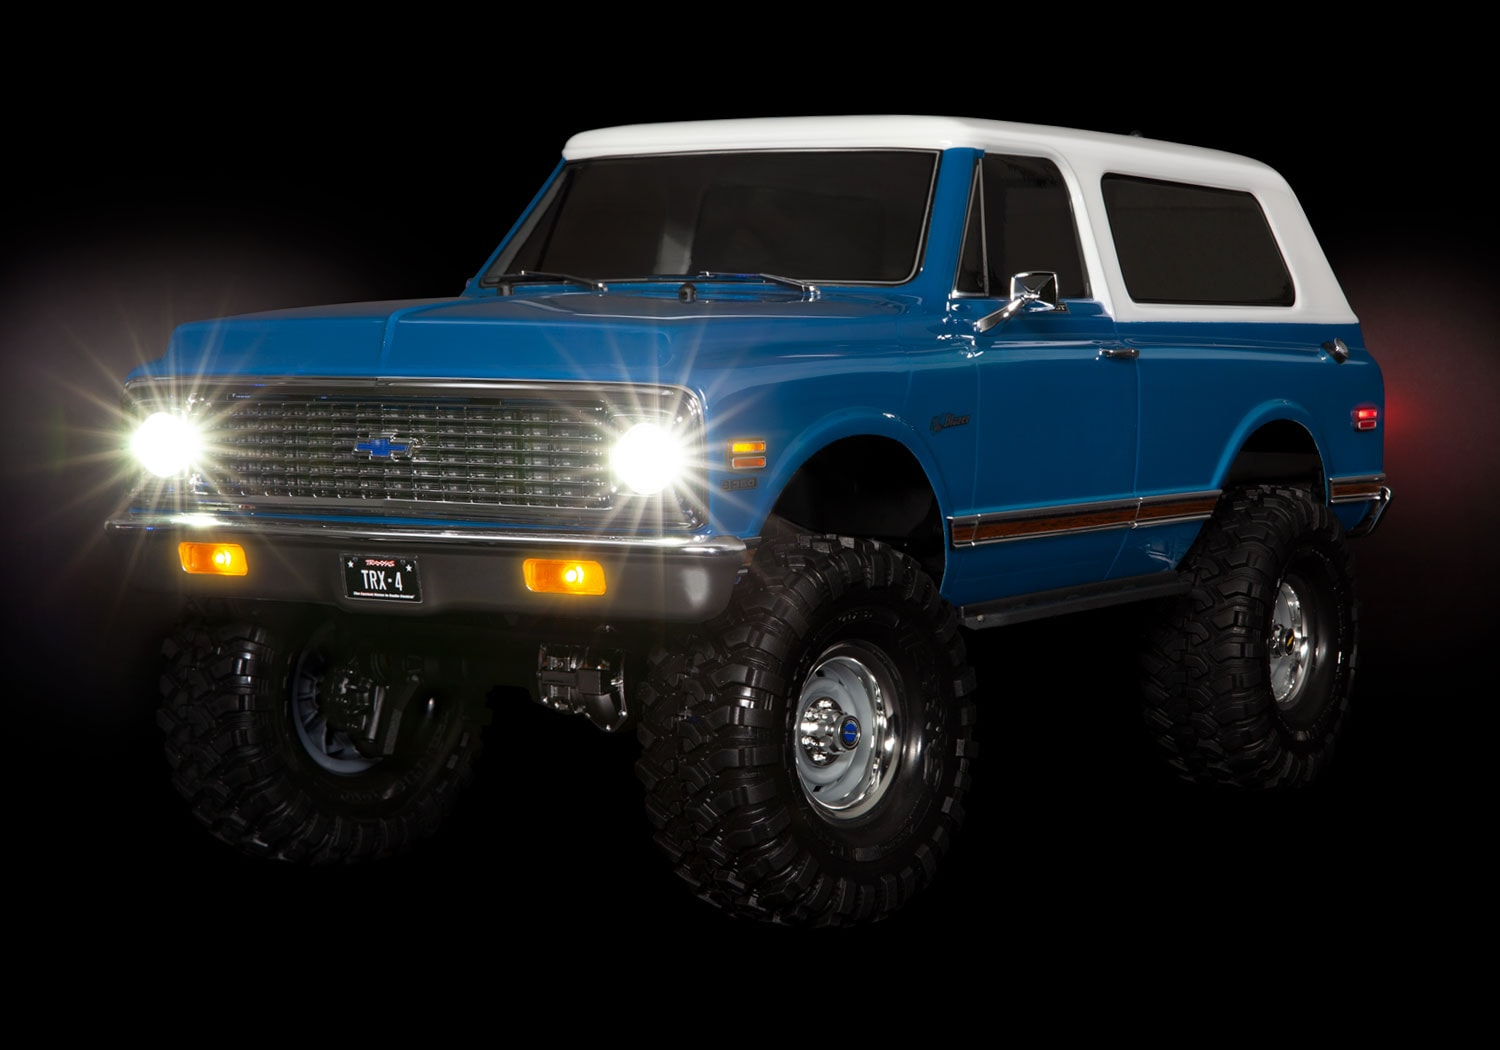 Make Your TRX-4 K5 Blazer Shine with this LED Kit from Traxxas